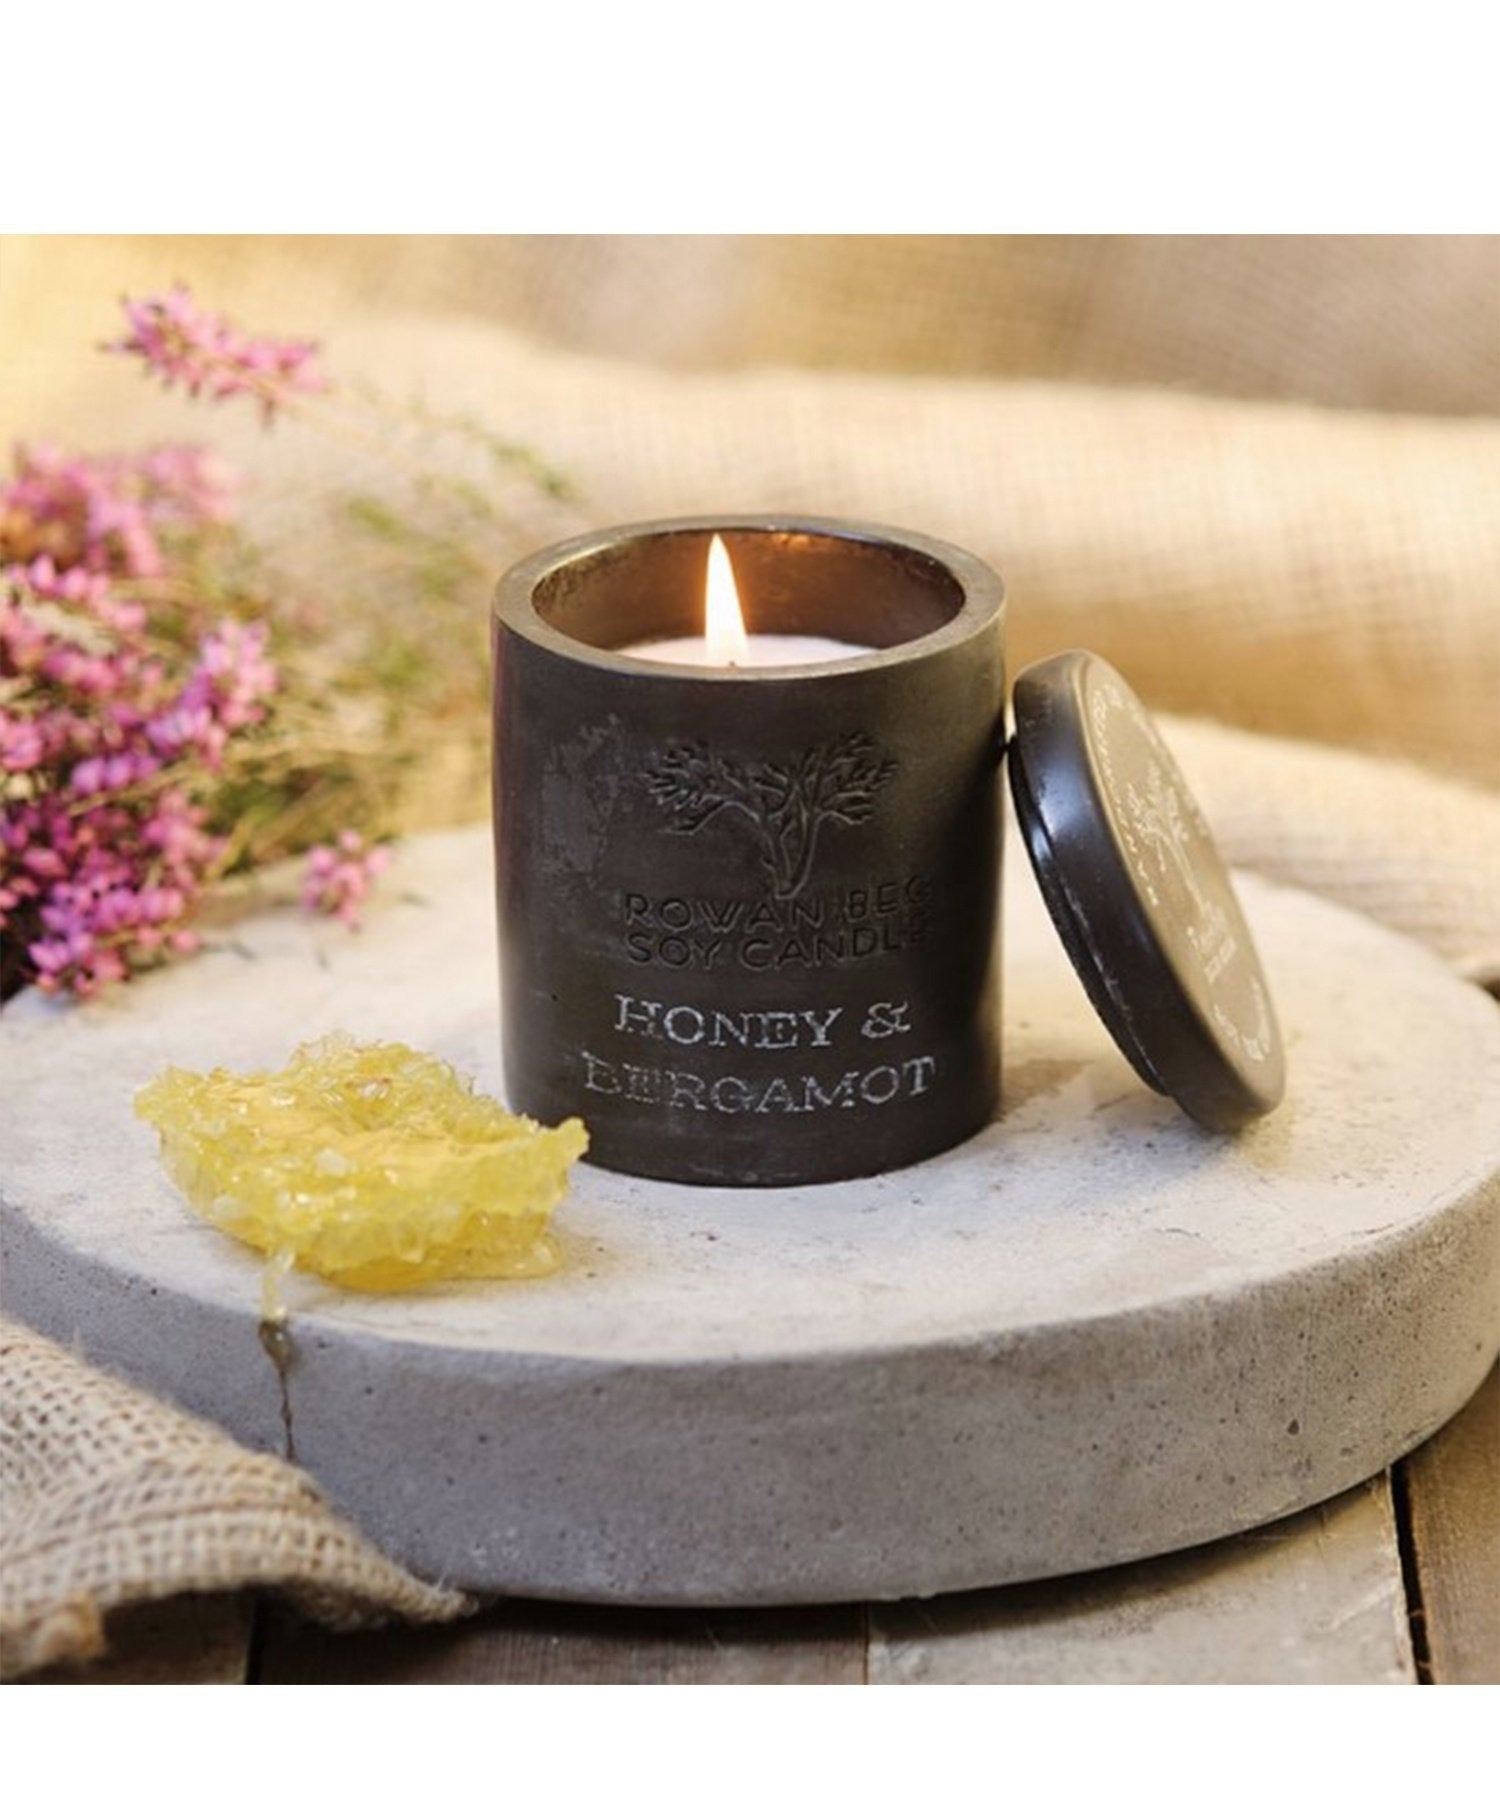 Urban Candle - Honey & Bergamot - [Rowan Beg] - Home Fragrance - Irish Gifts